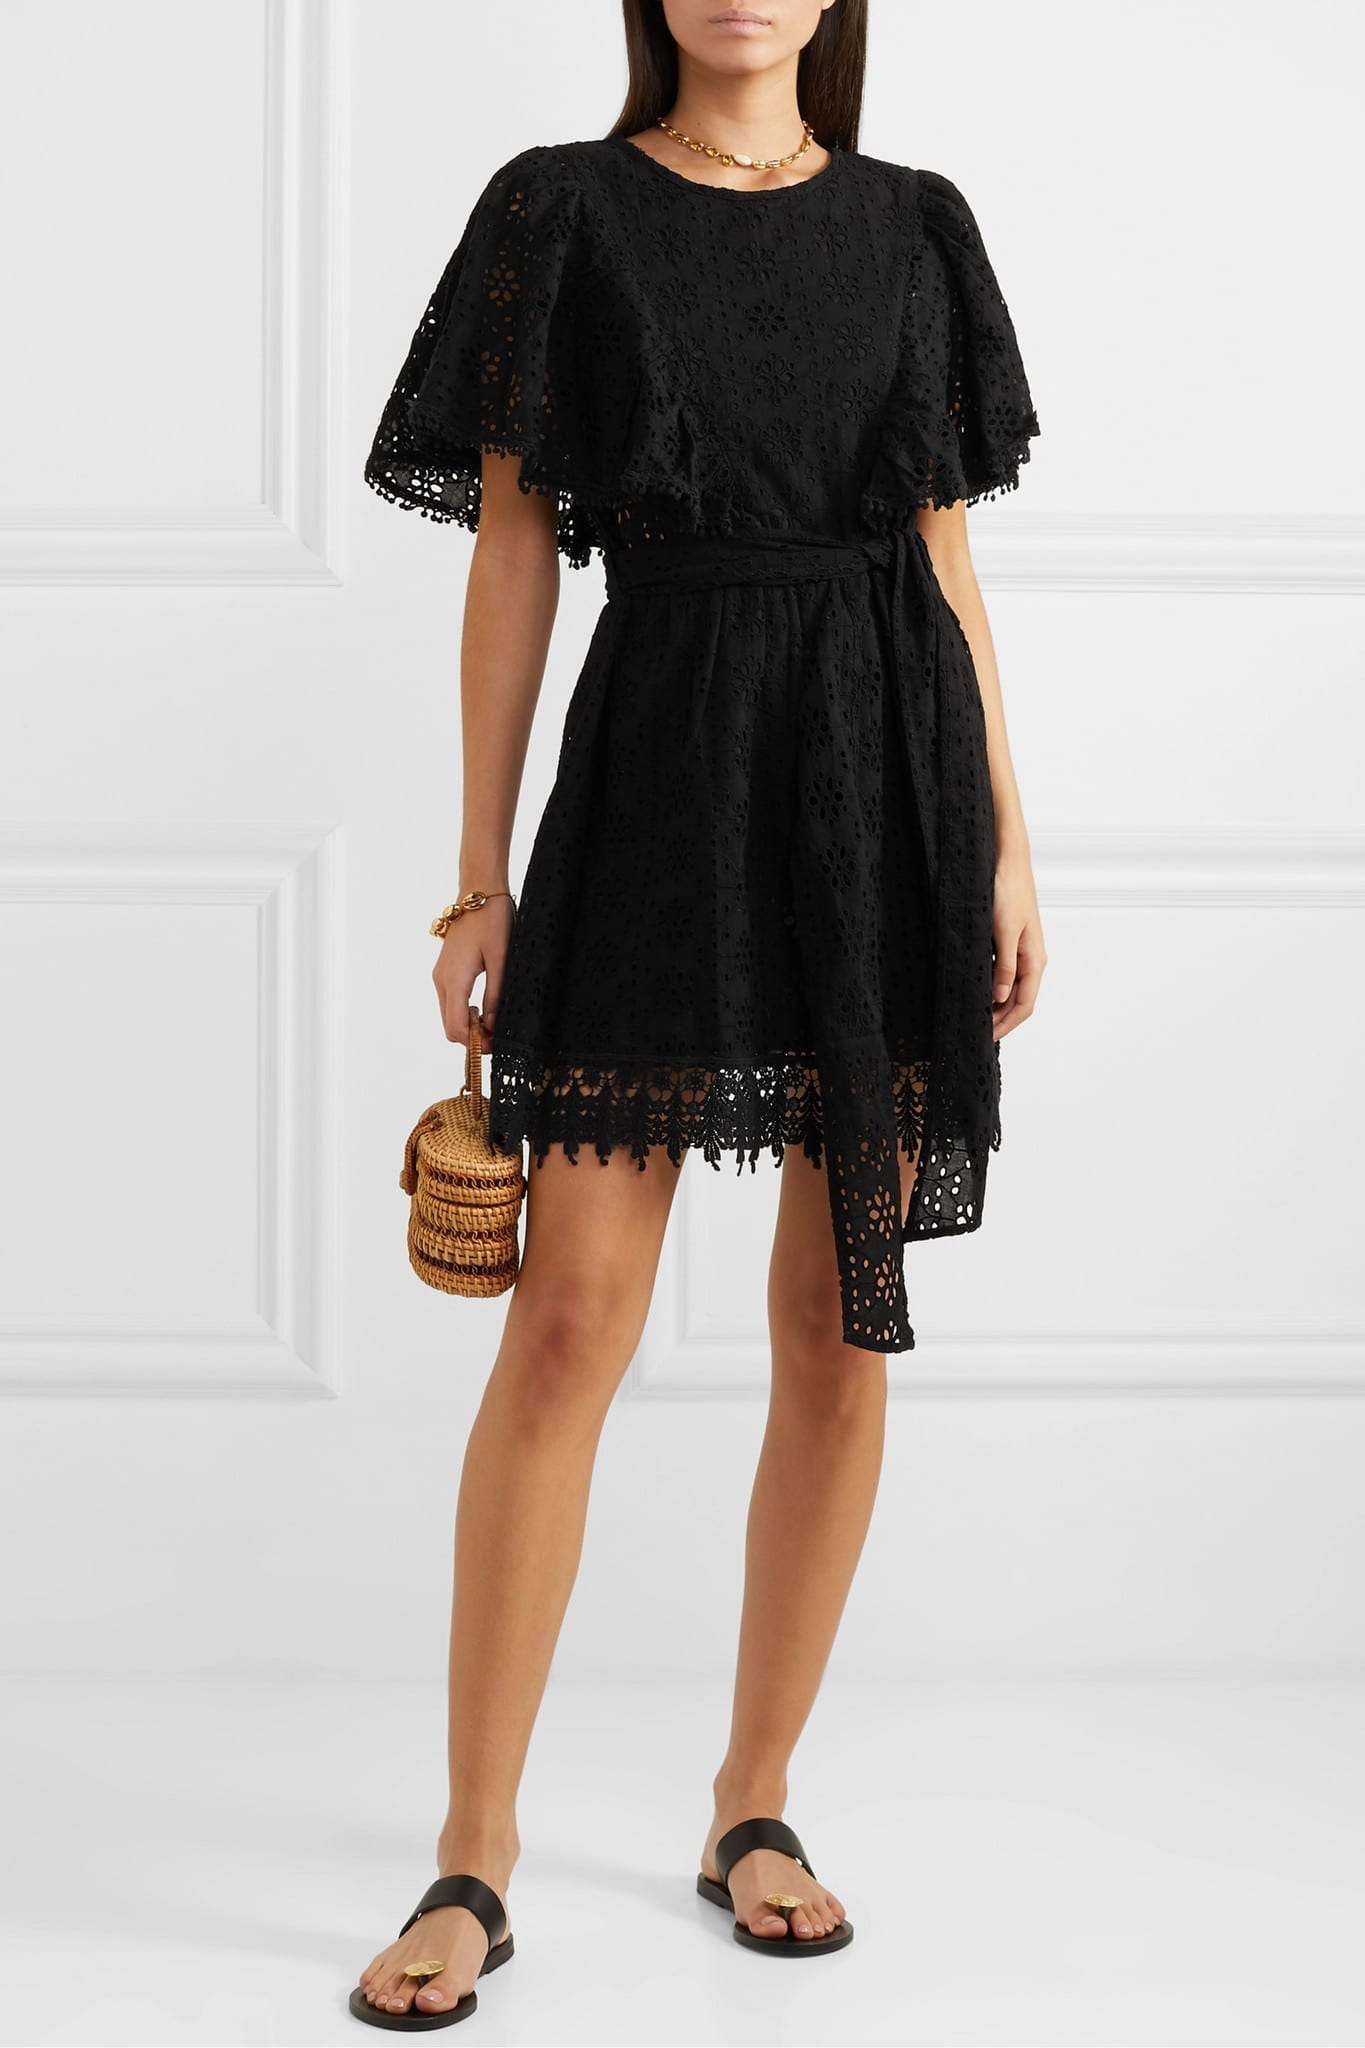 MELISSA ODABASH Kara Ruffled Broderie Anglaise Cotton Mini Dress